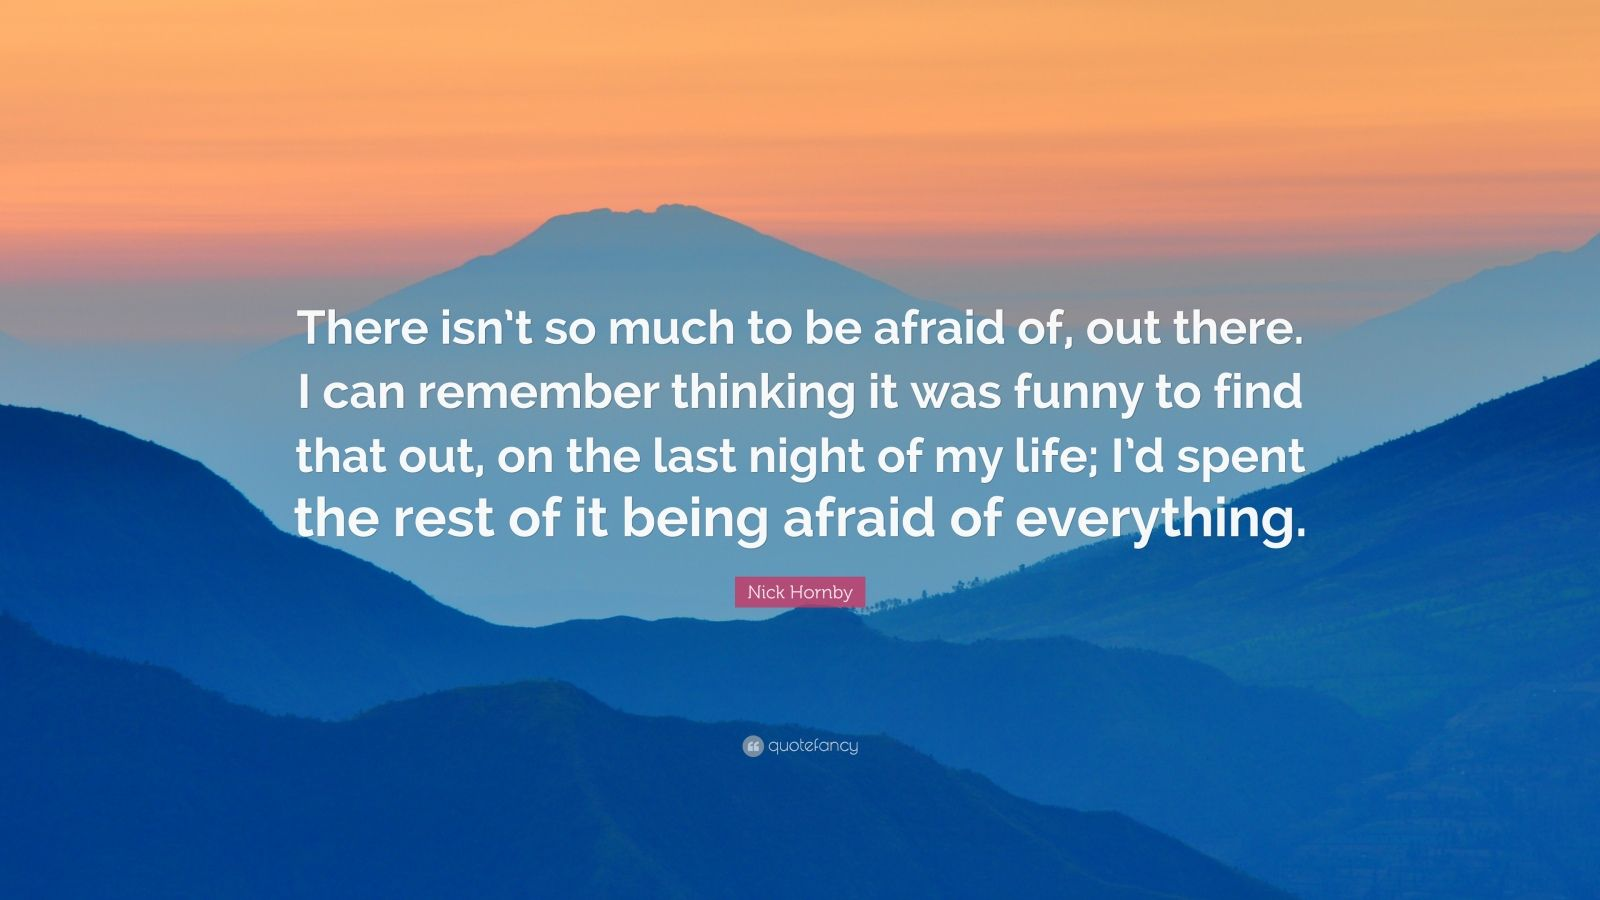 """Nick Hornby Quote: """"There isn't so much to be afraid of, out there. I can remember thinking it was funny to find that out, on the last night of my life; I'd spent the rest of it being afraid of everything."""""""